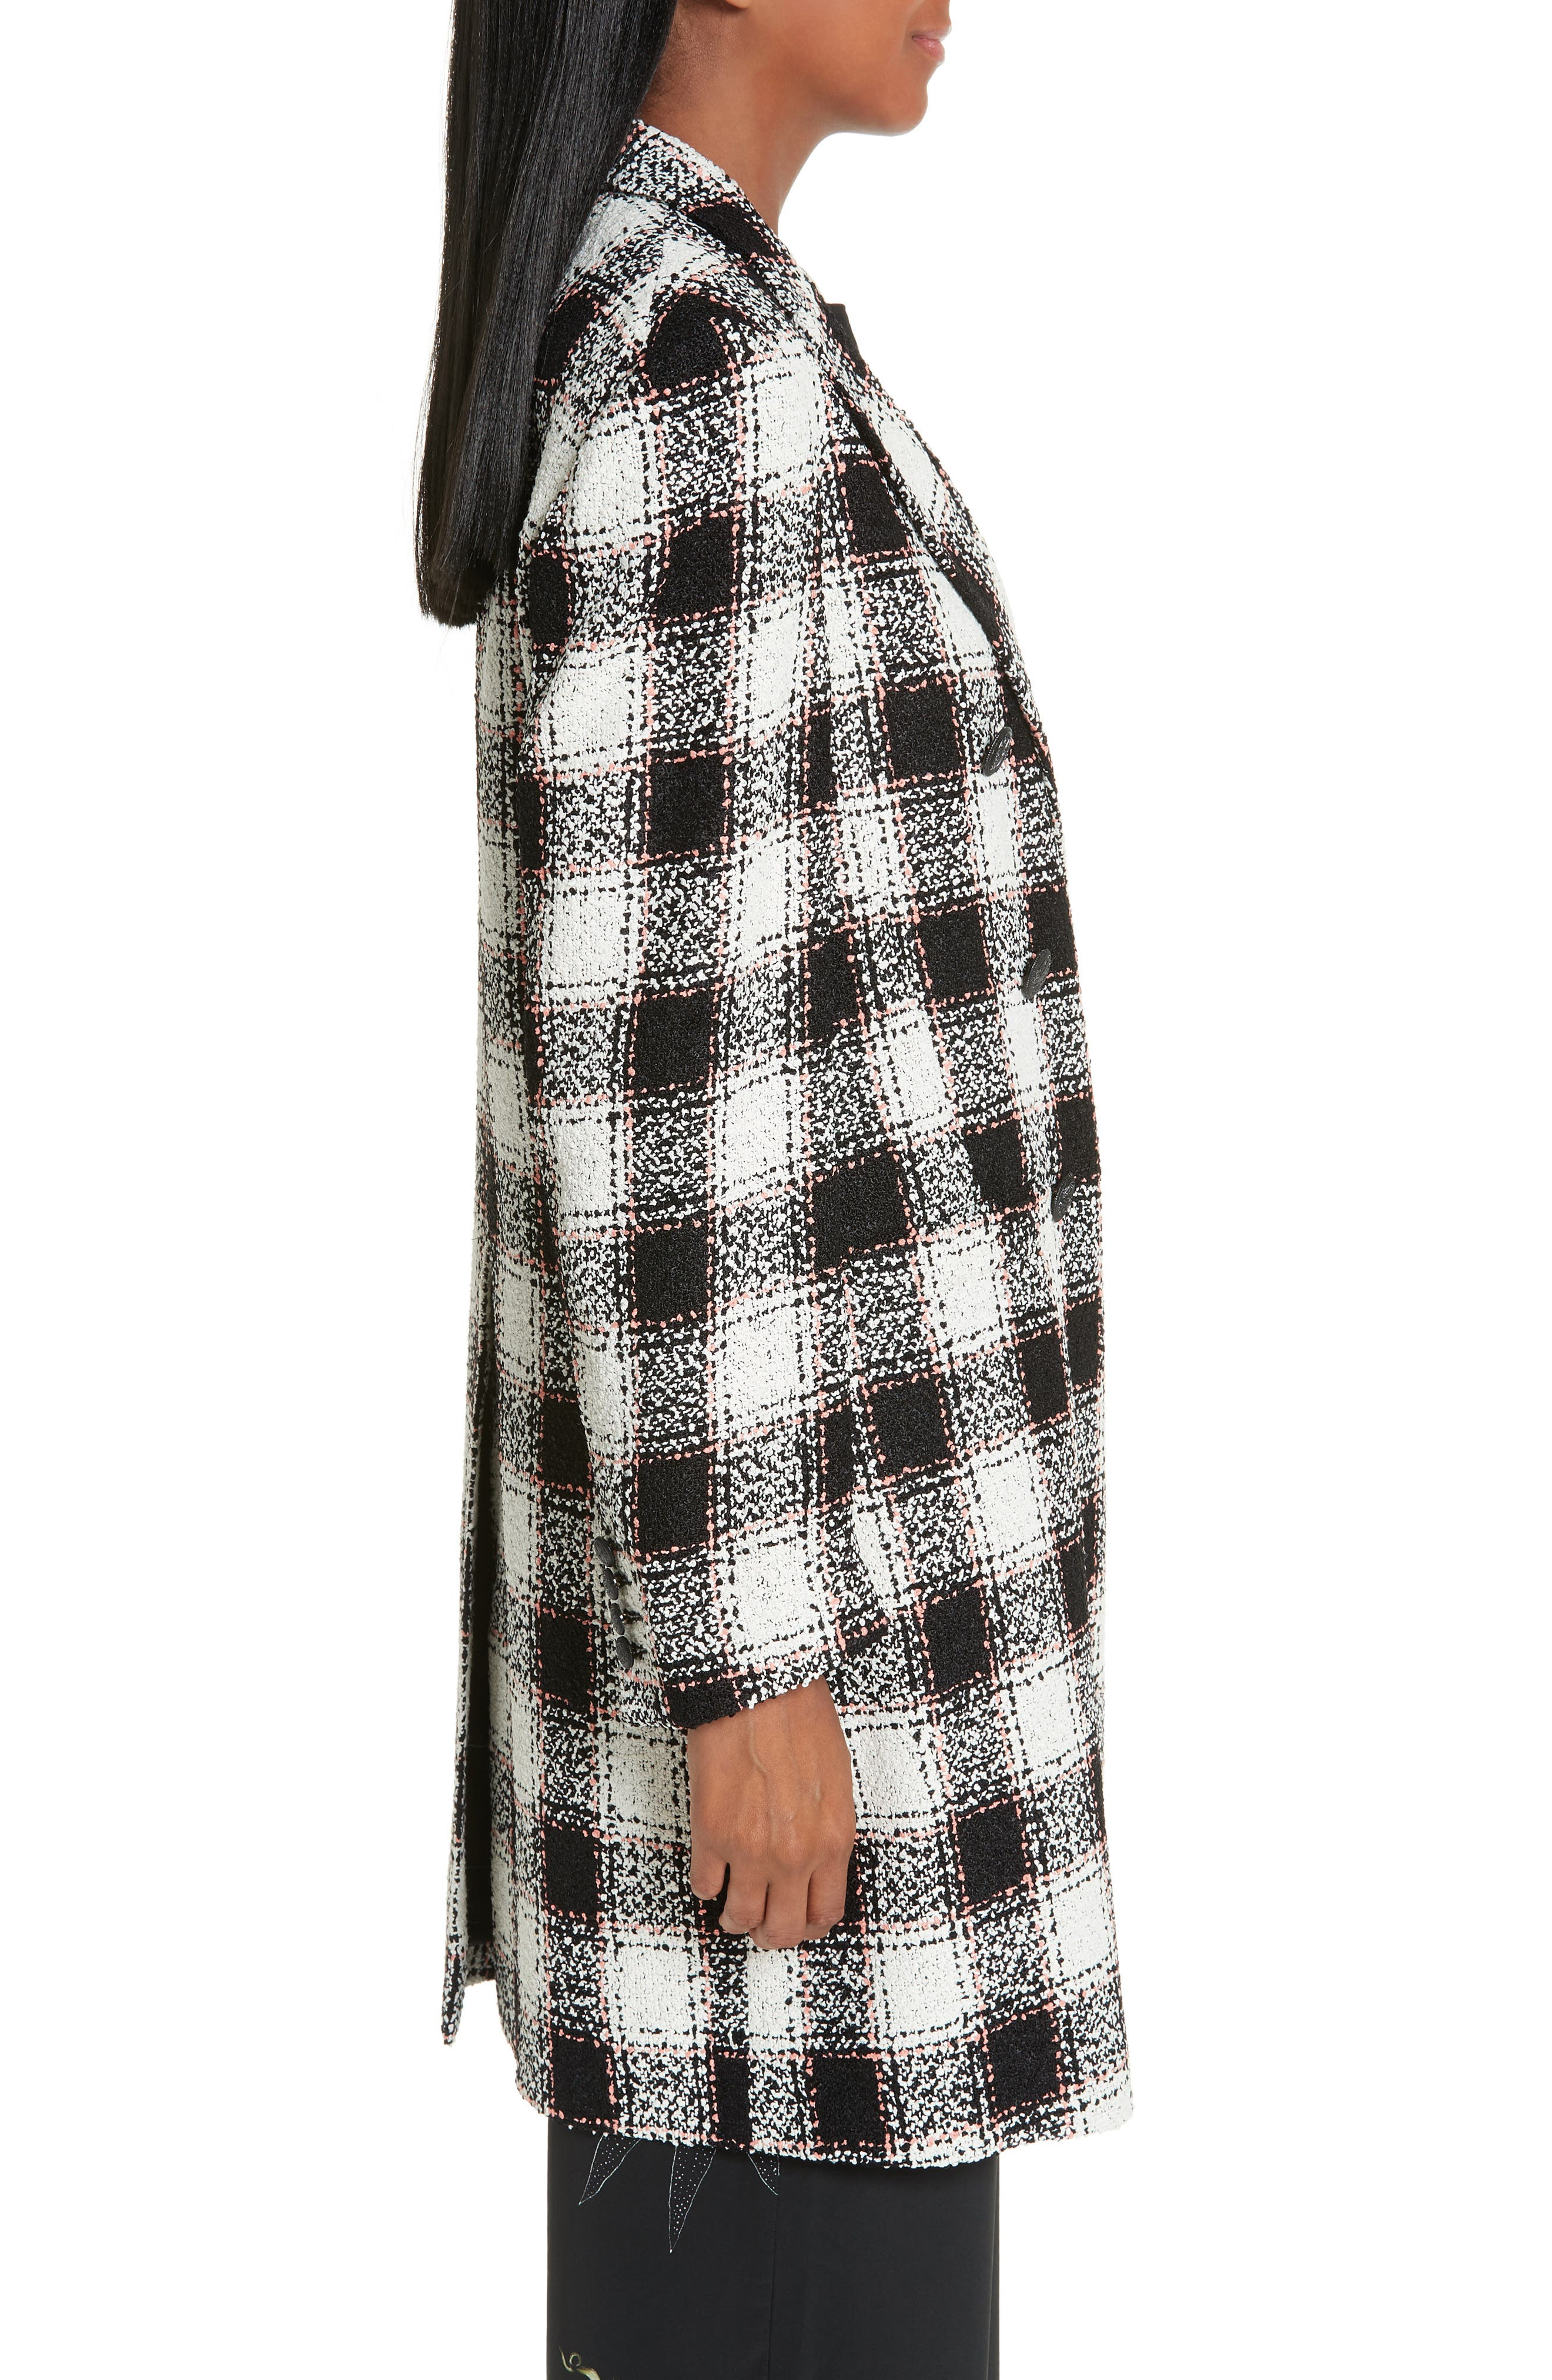 ETRO, Double Breasted Checked Tweed Jacket, Alternate thumbnail 3, color, WHITE